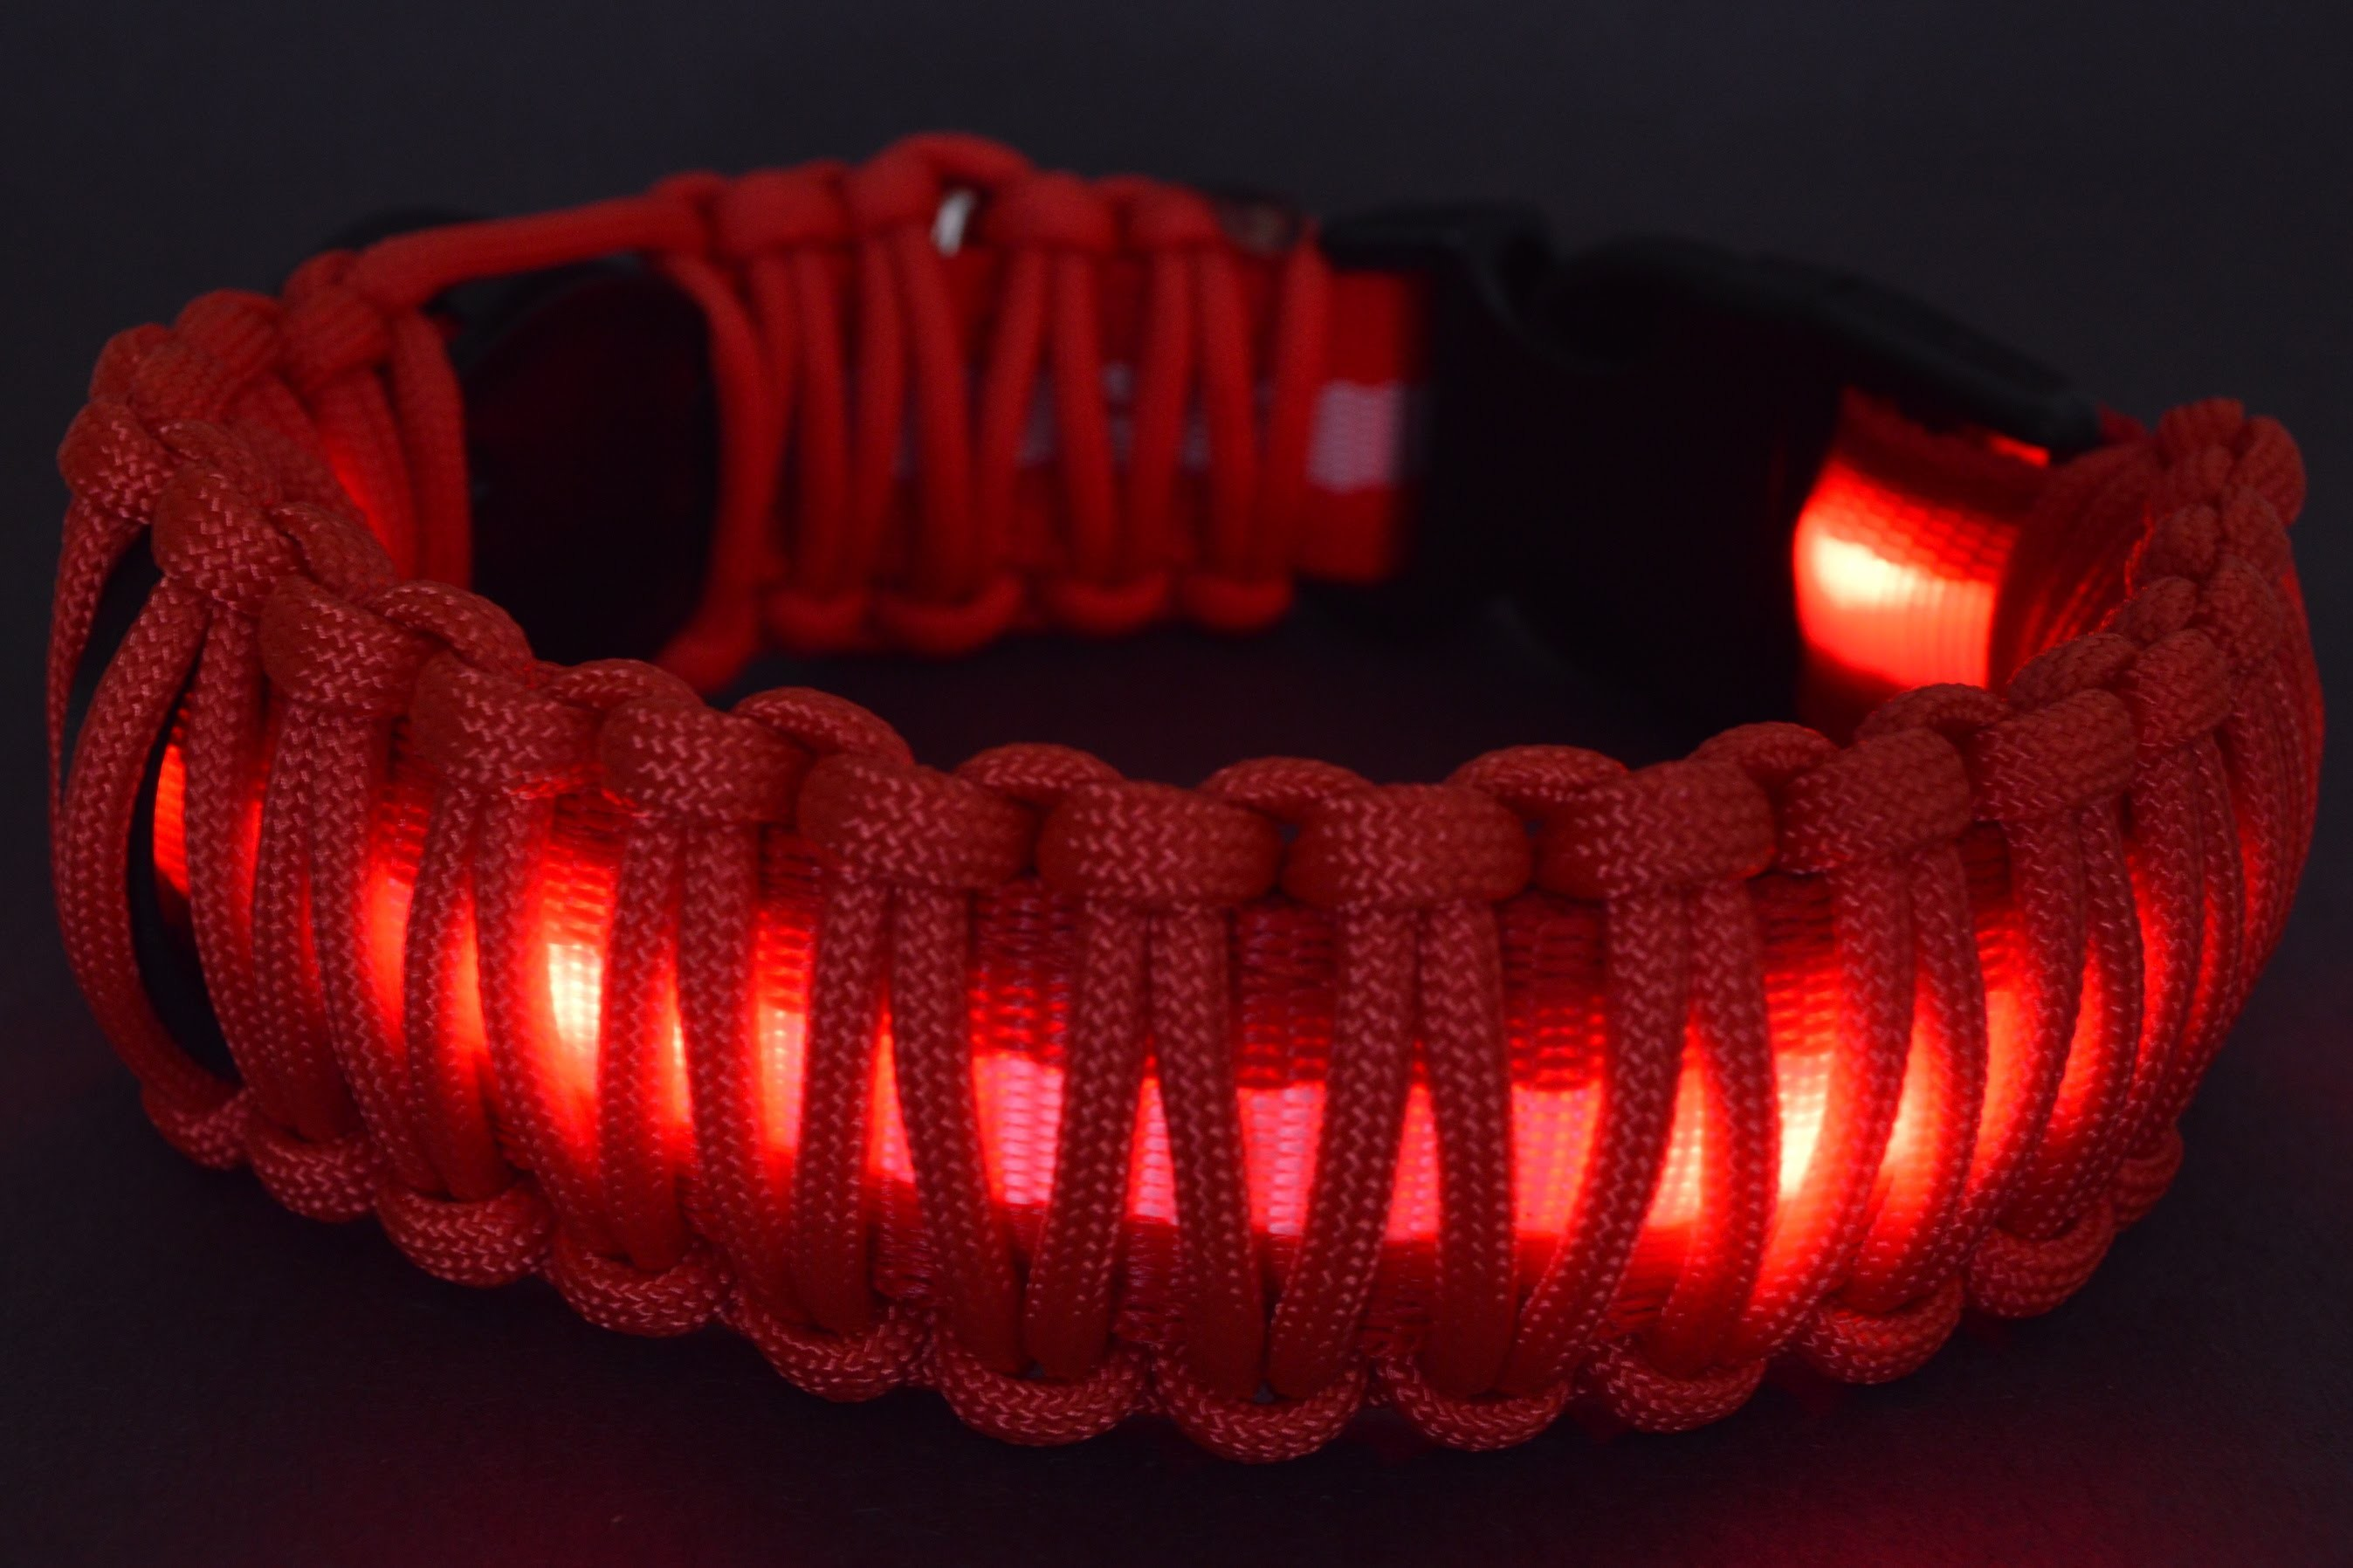 How to Wrap an L.E.D. Dog Collar with Paracord - BoredParacord